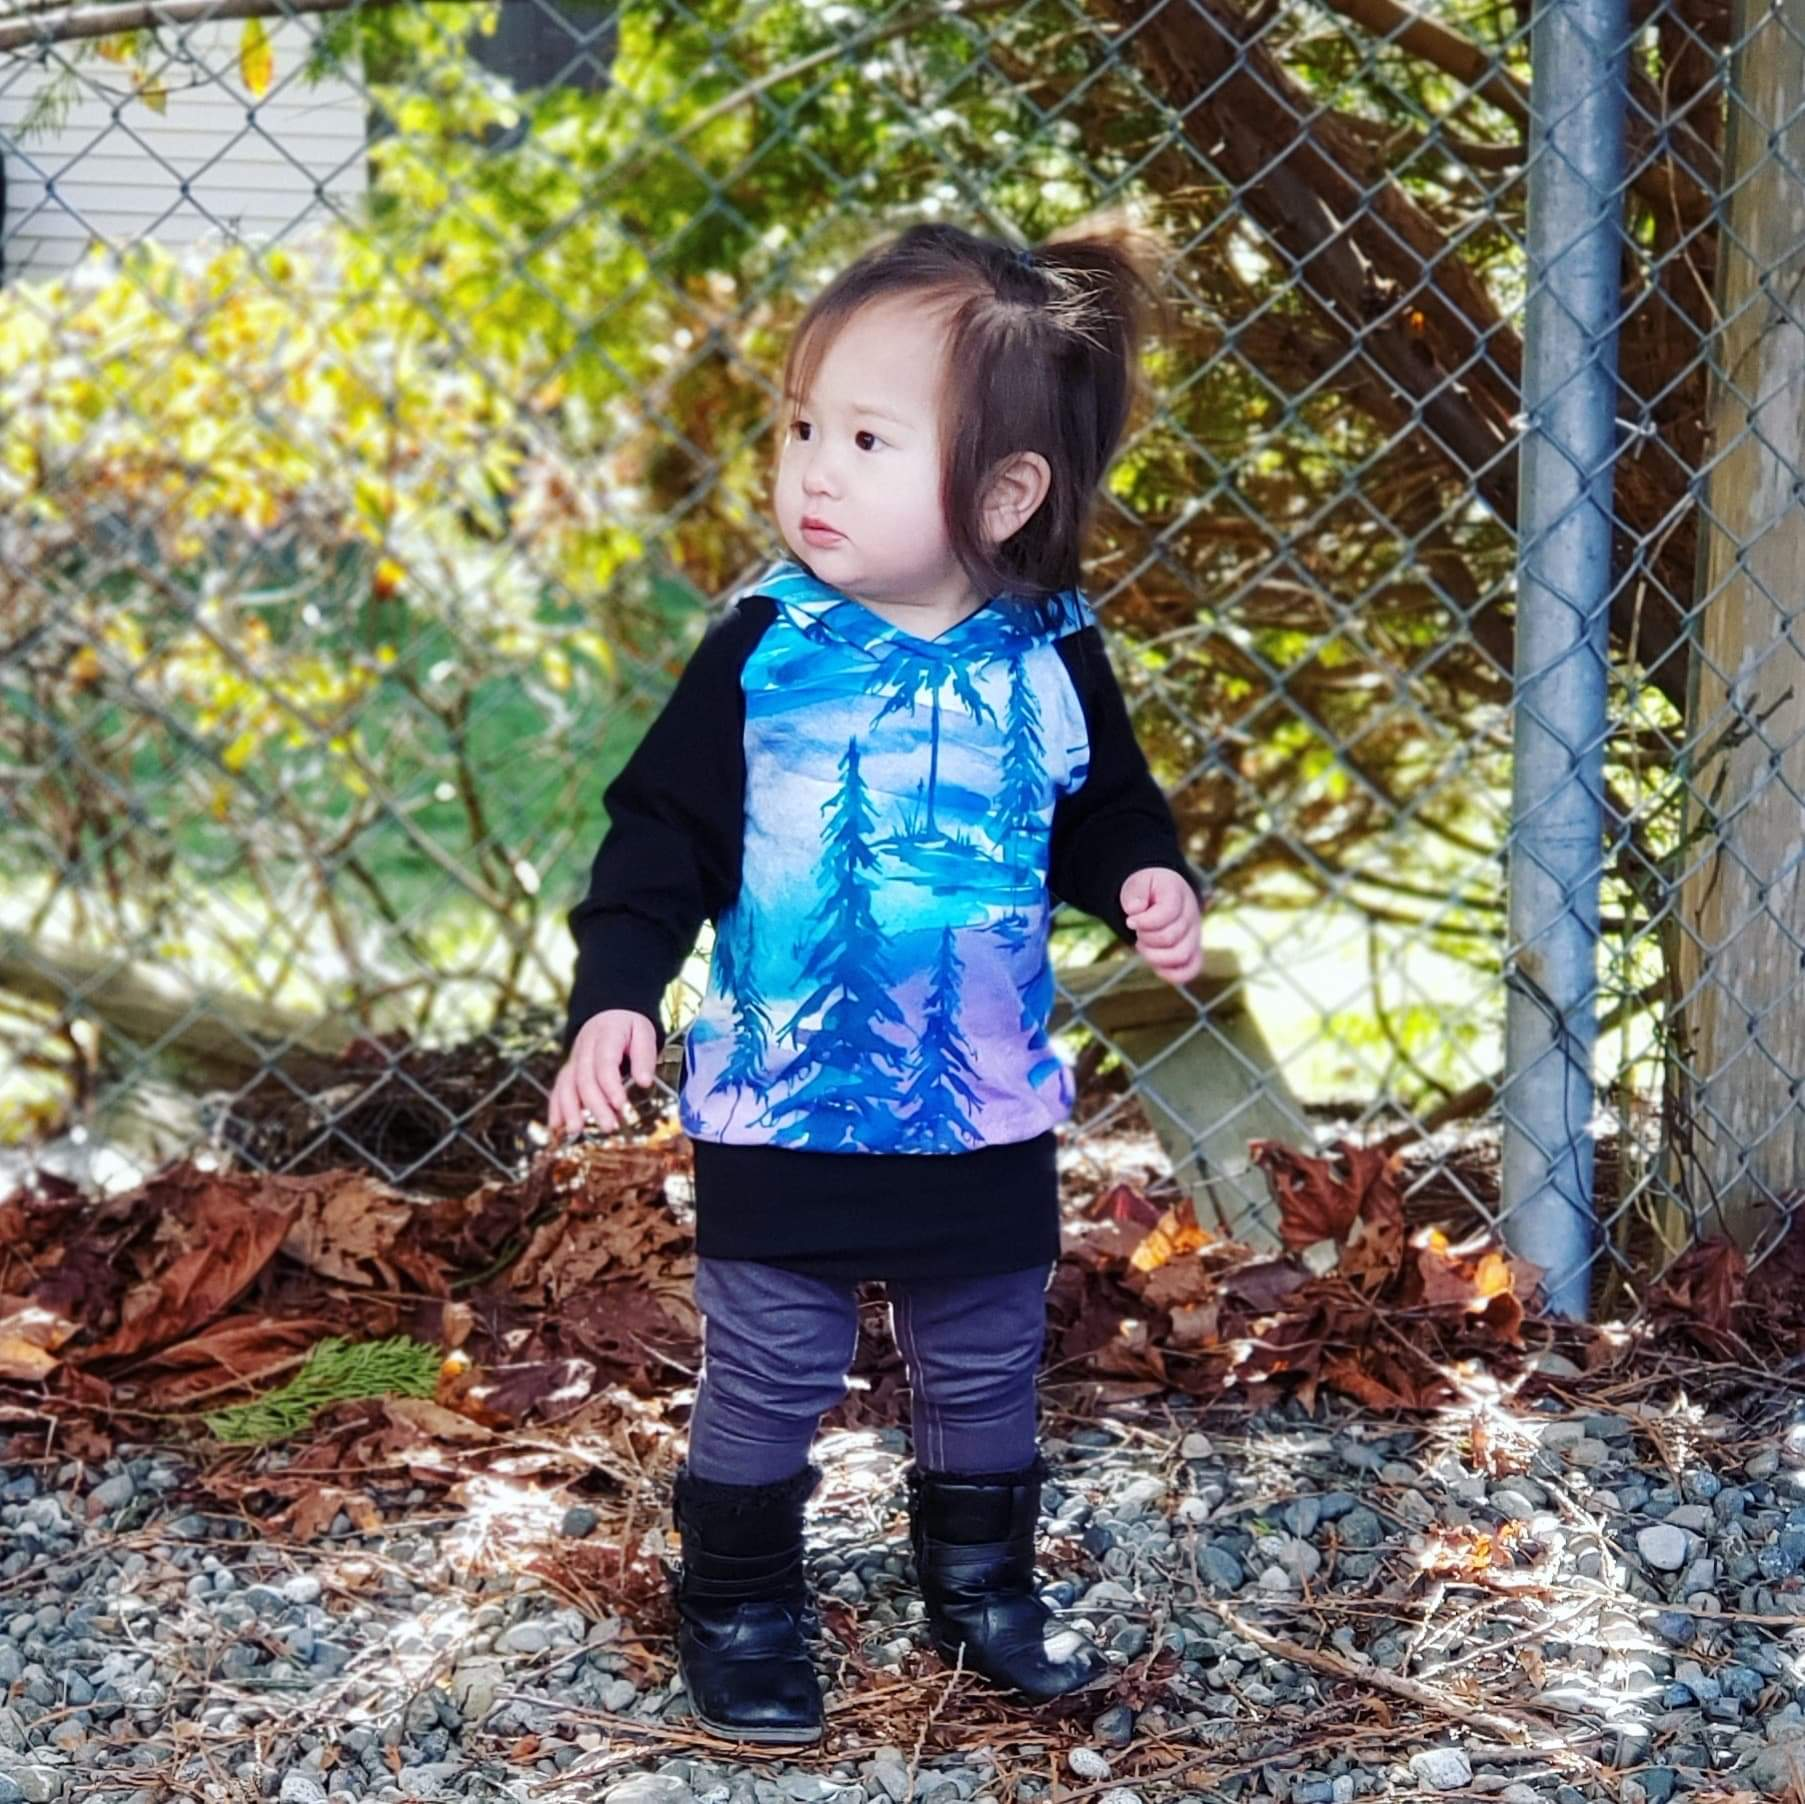 LittleMod Clothing's Watercolour Tree Hoodie for babies, toddlers, and older kids blue and purple